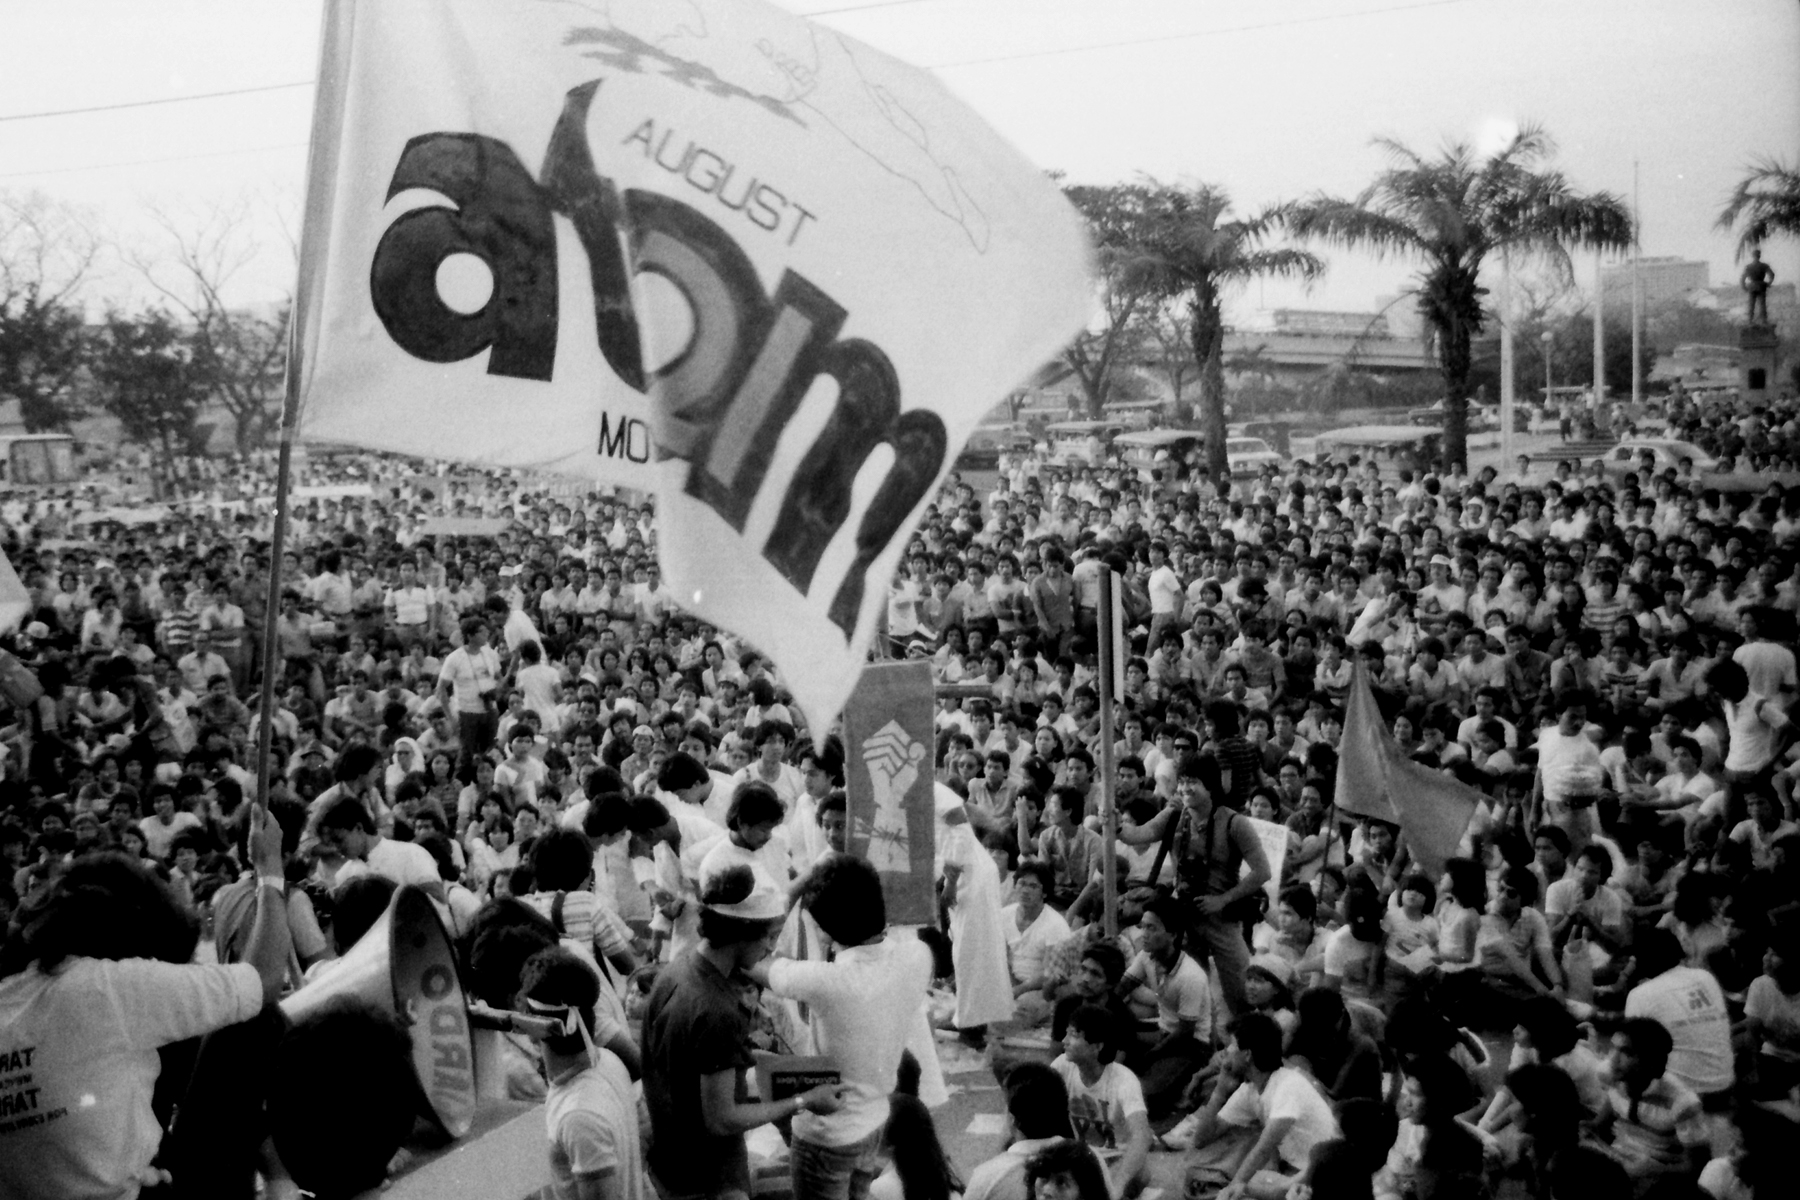 ATOM. In January 1984, the August Twenty-One Movement mobilized thousands of Aquino supporters to intensify the campaign to oust Marcos. All photos by Romeo Mariano